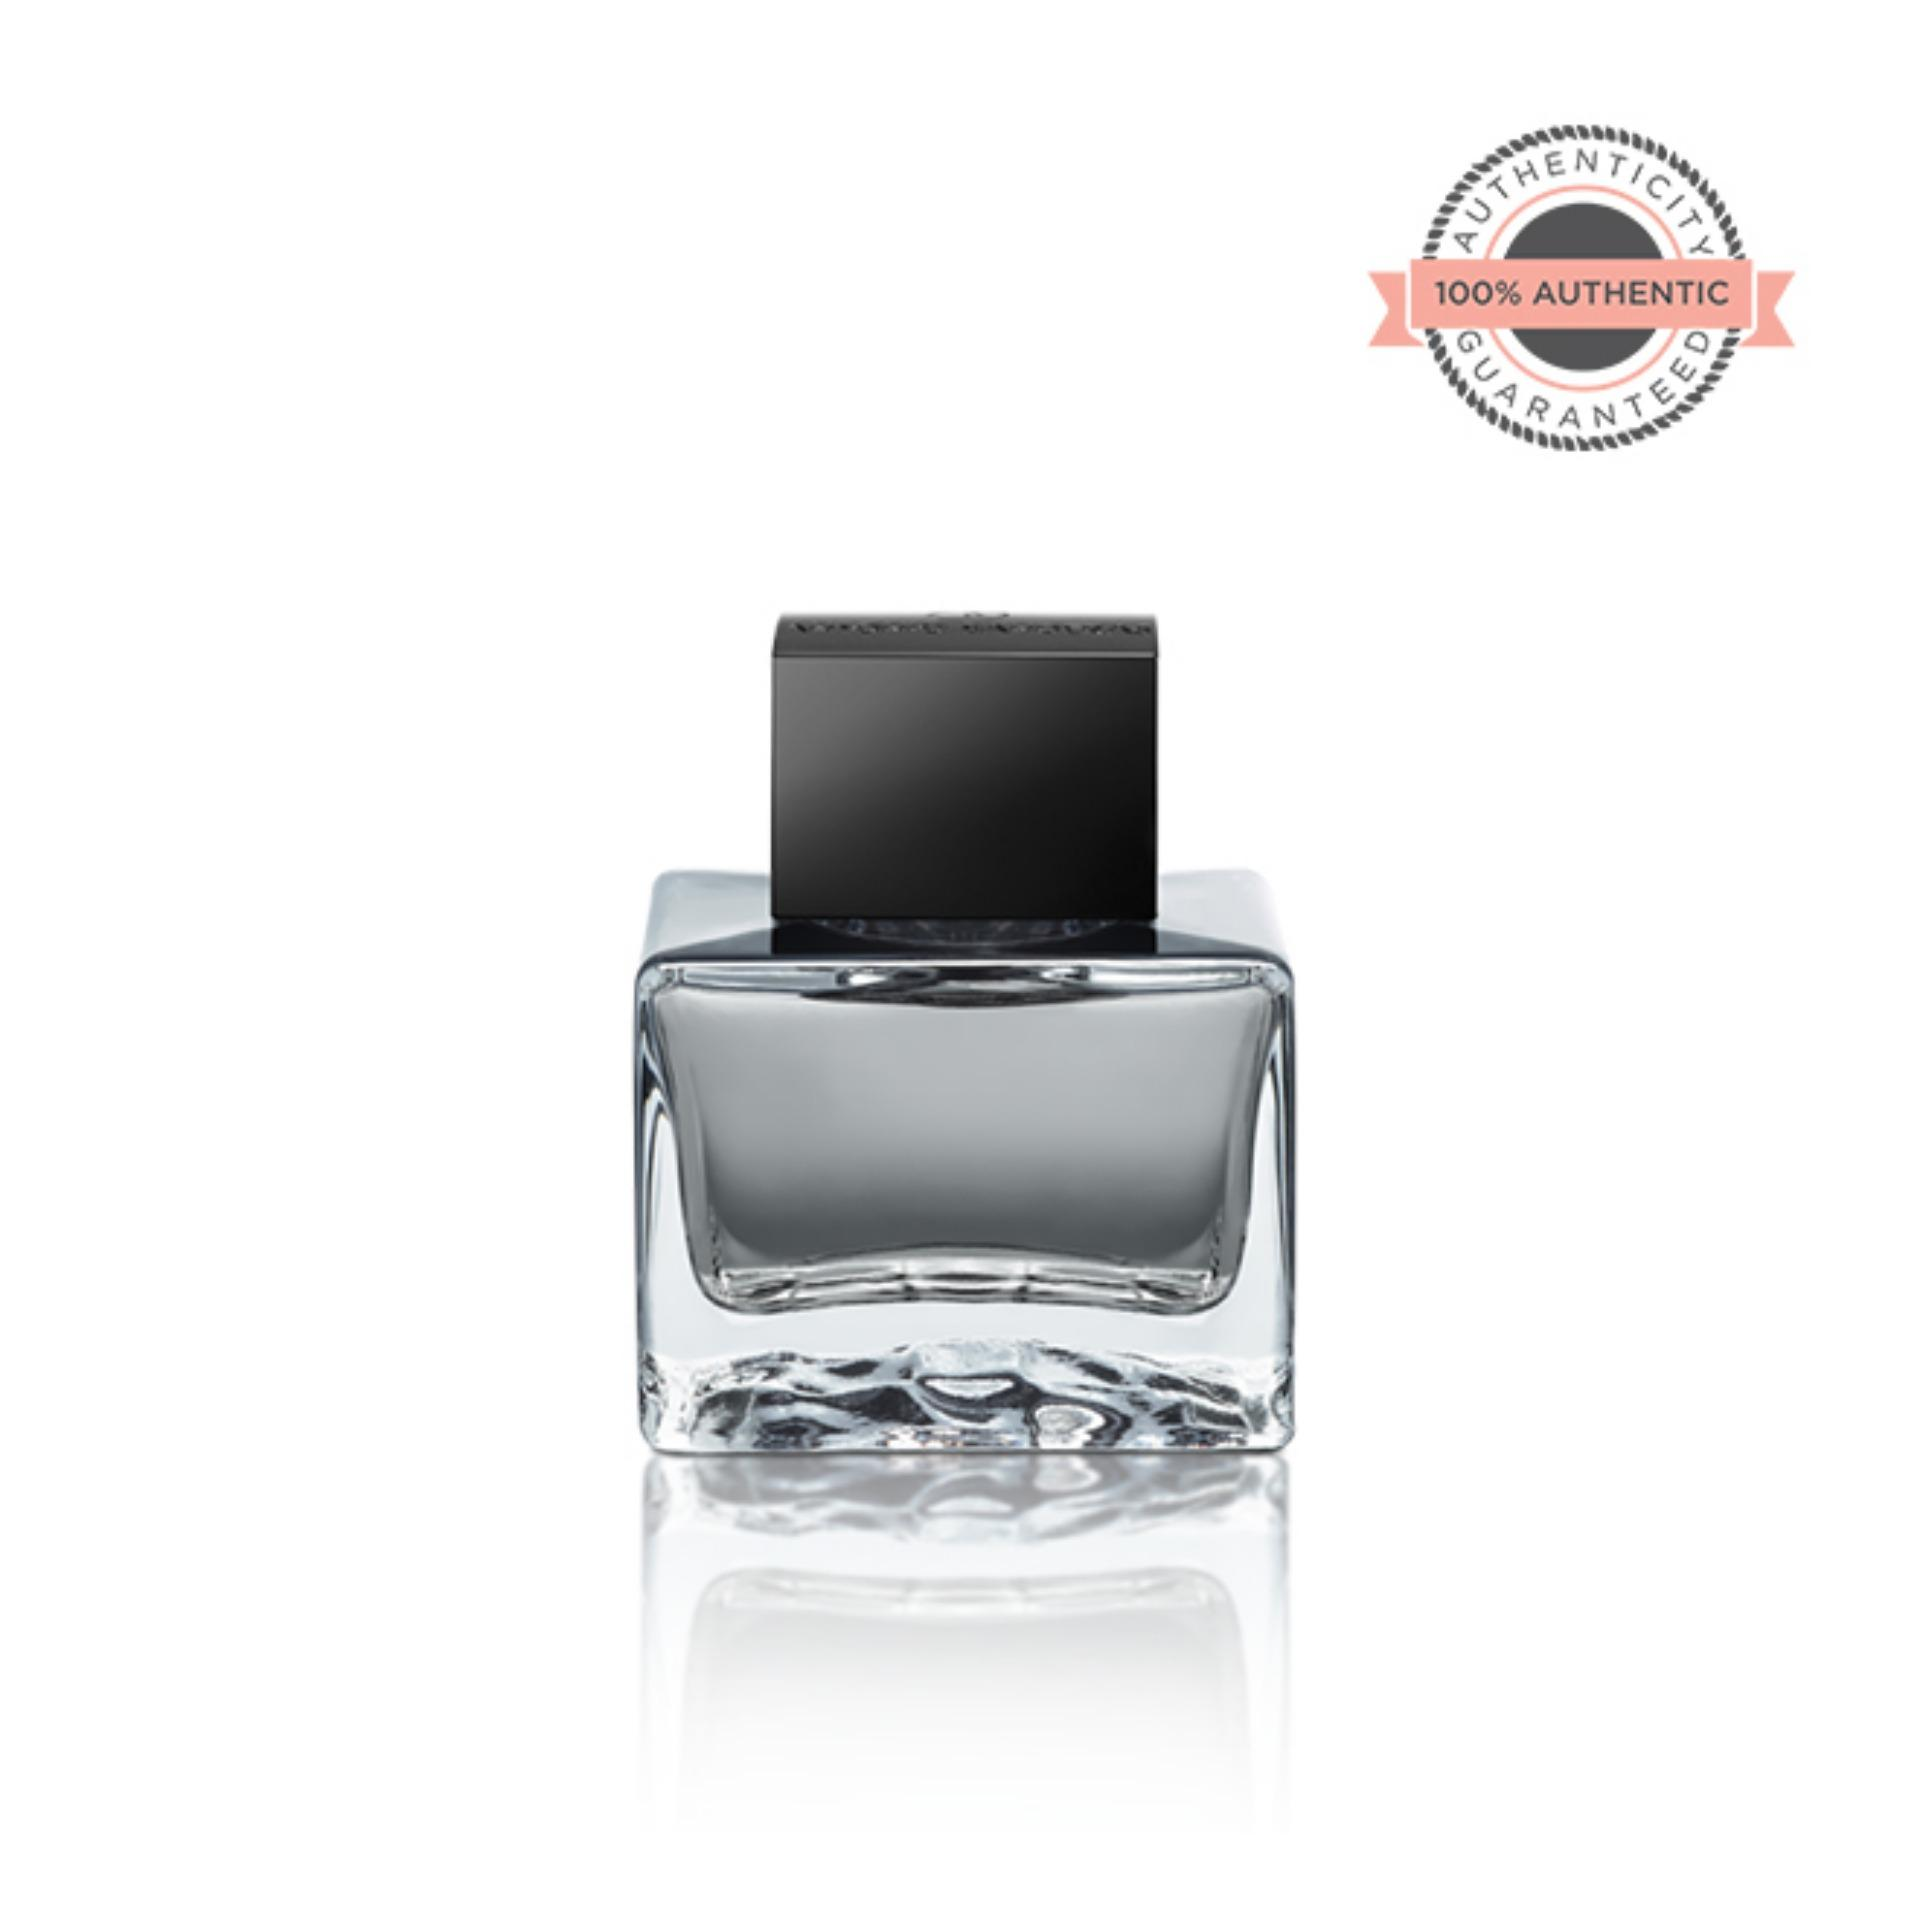 Antonio Banderas Seduction in Black Men Eau De Toilette 50ml